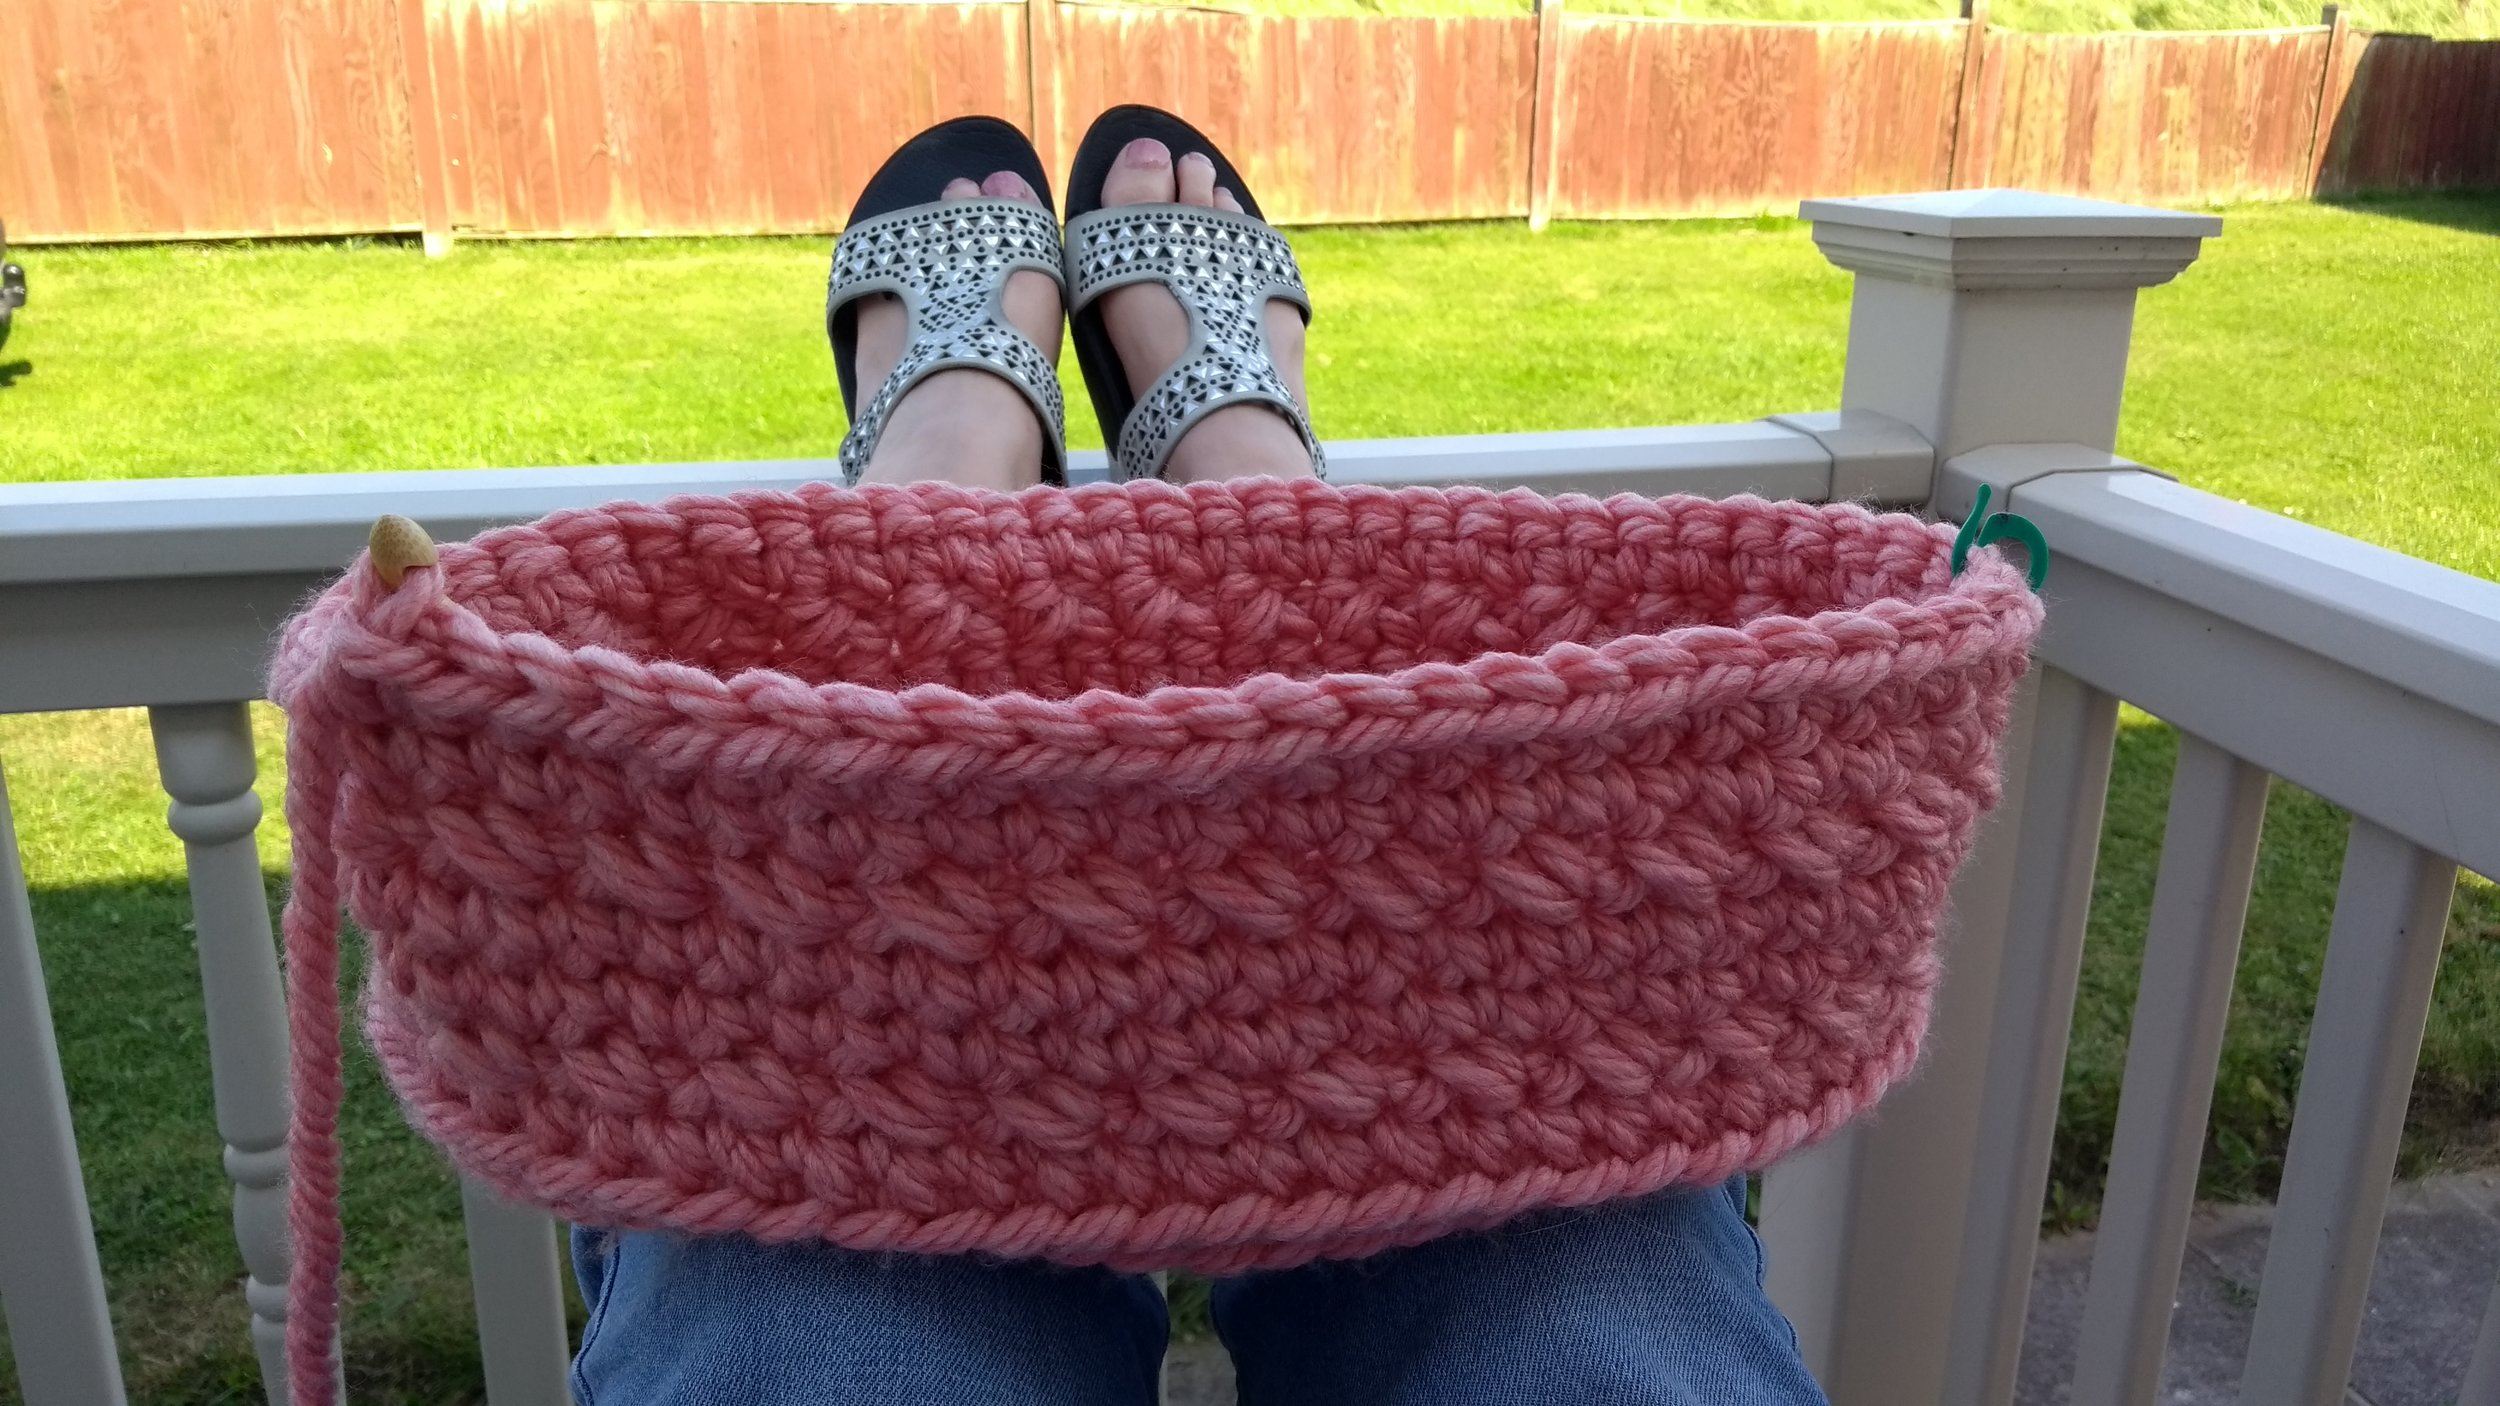 Super Bulky Crochet Basket 2.jpg